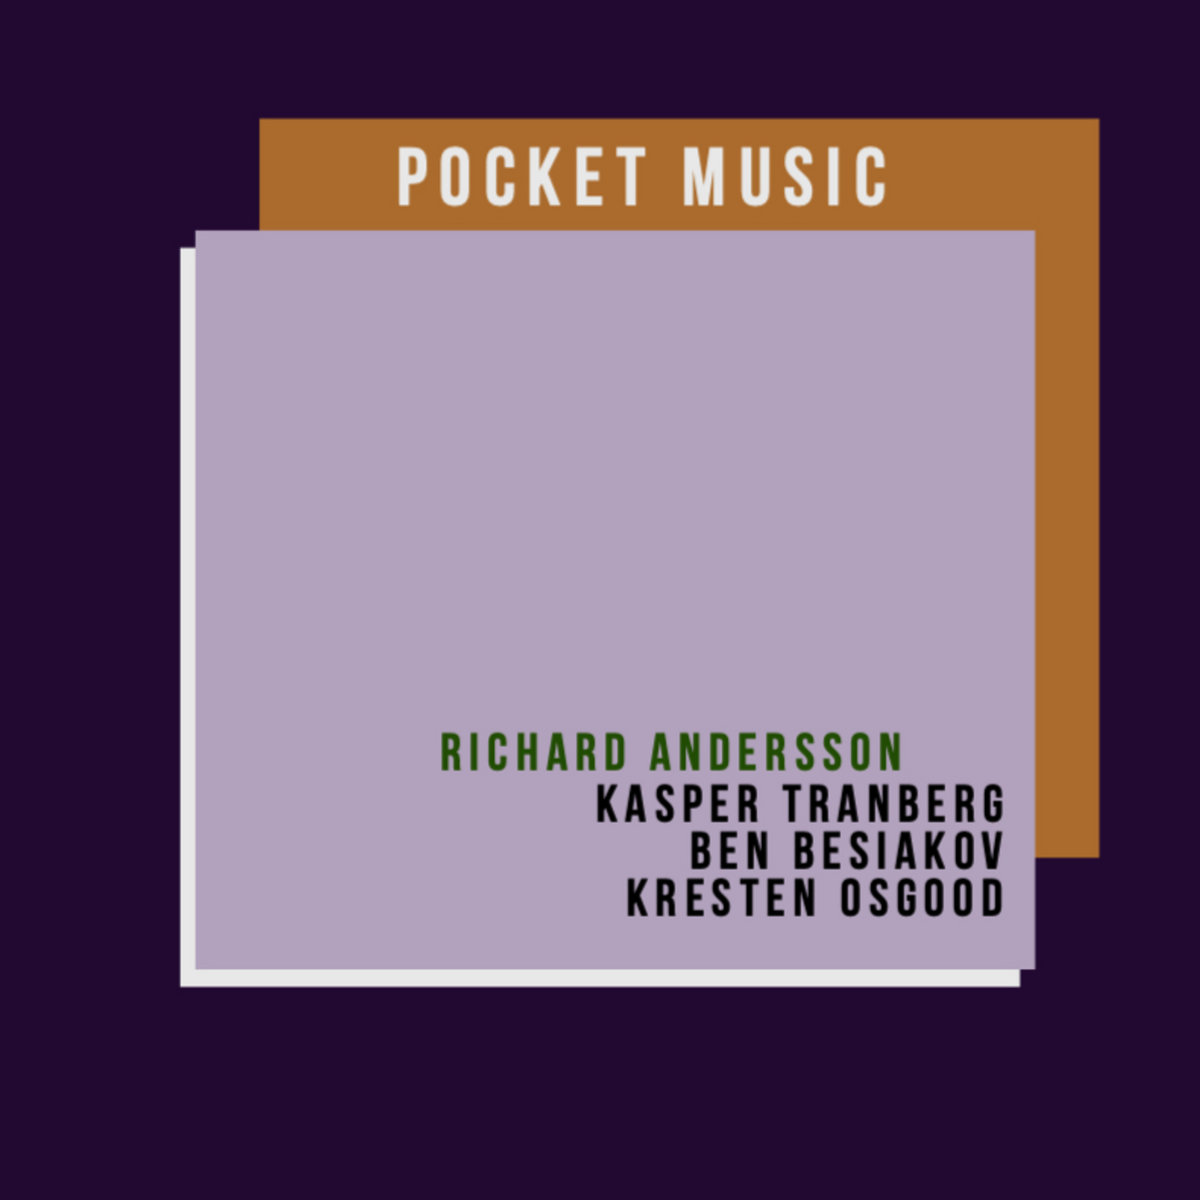 Review of The Richard Andersson Quartet: Pocket Music